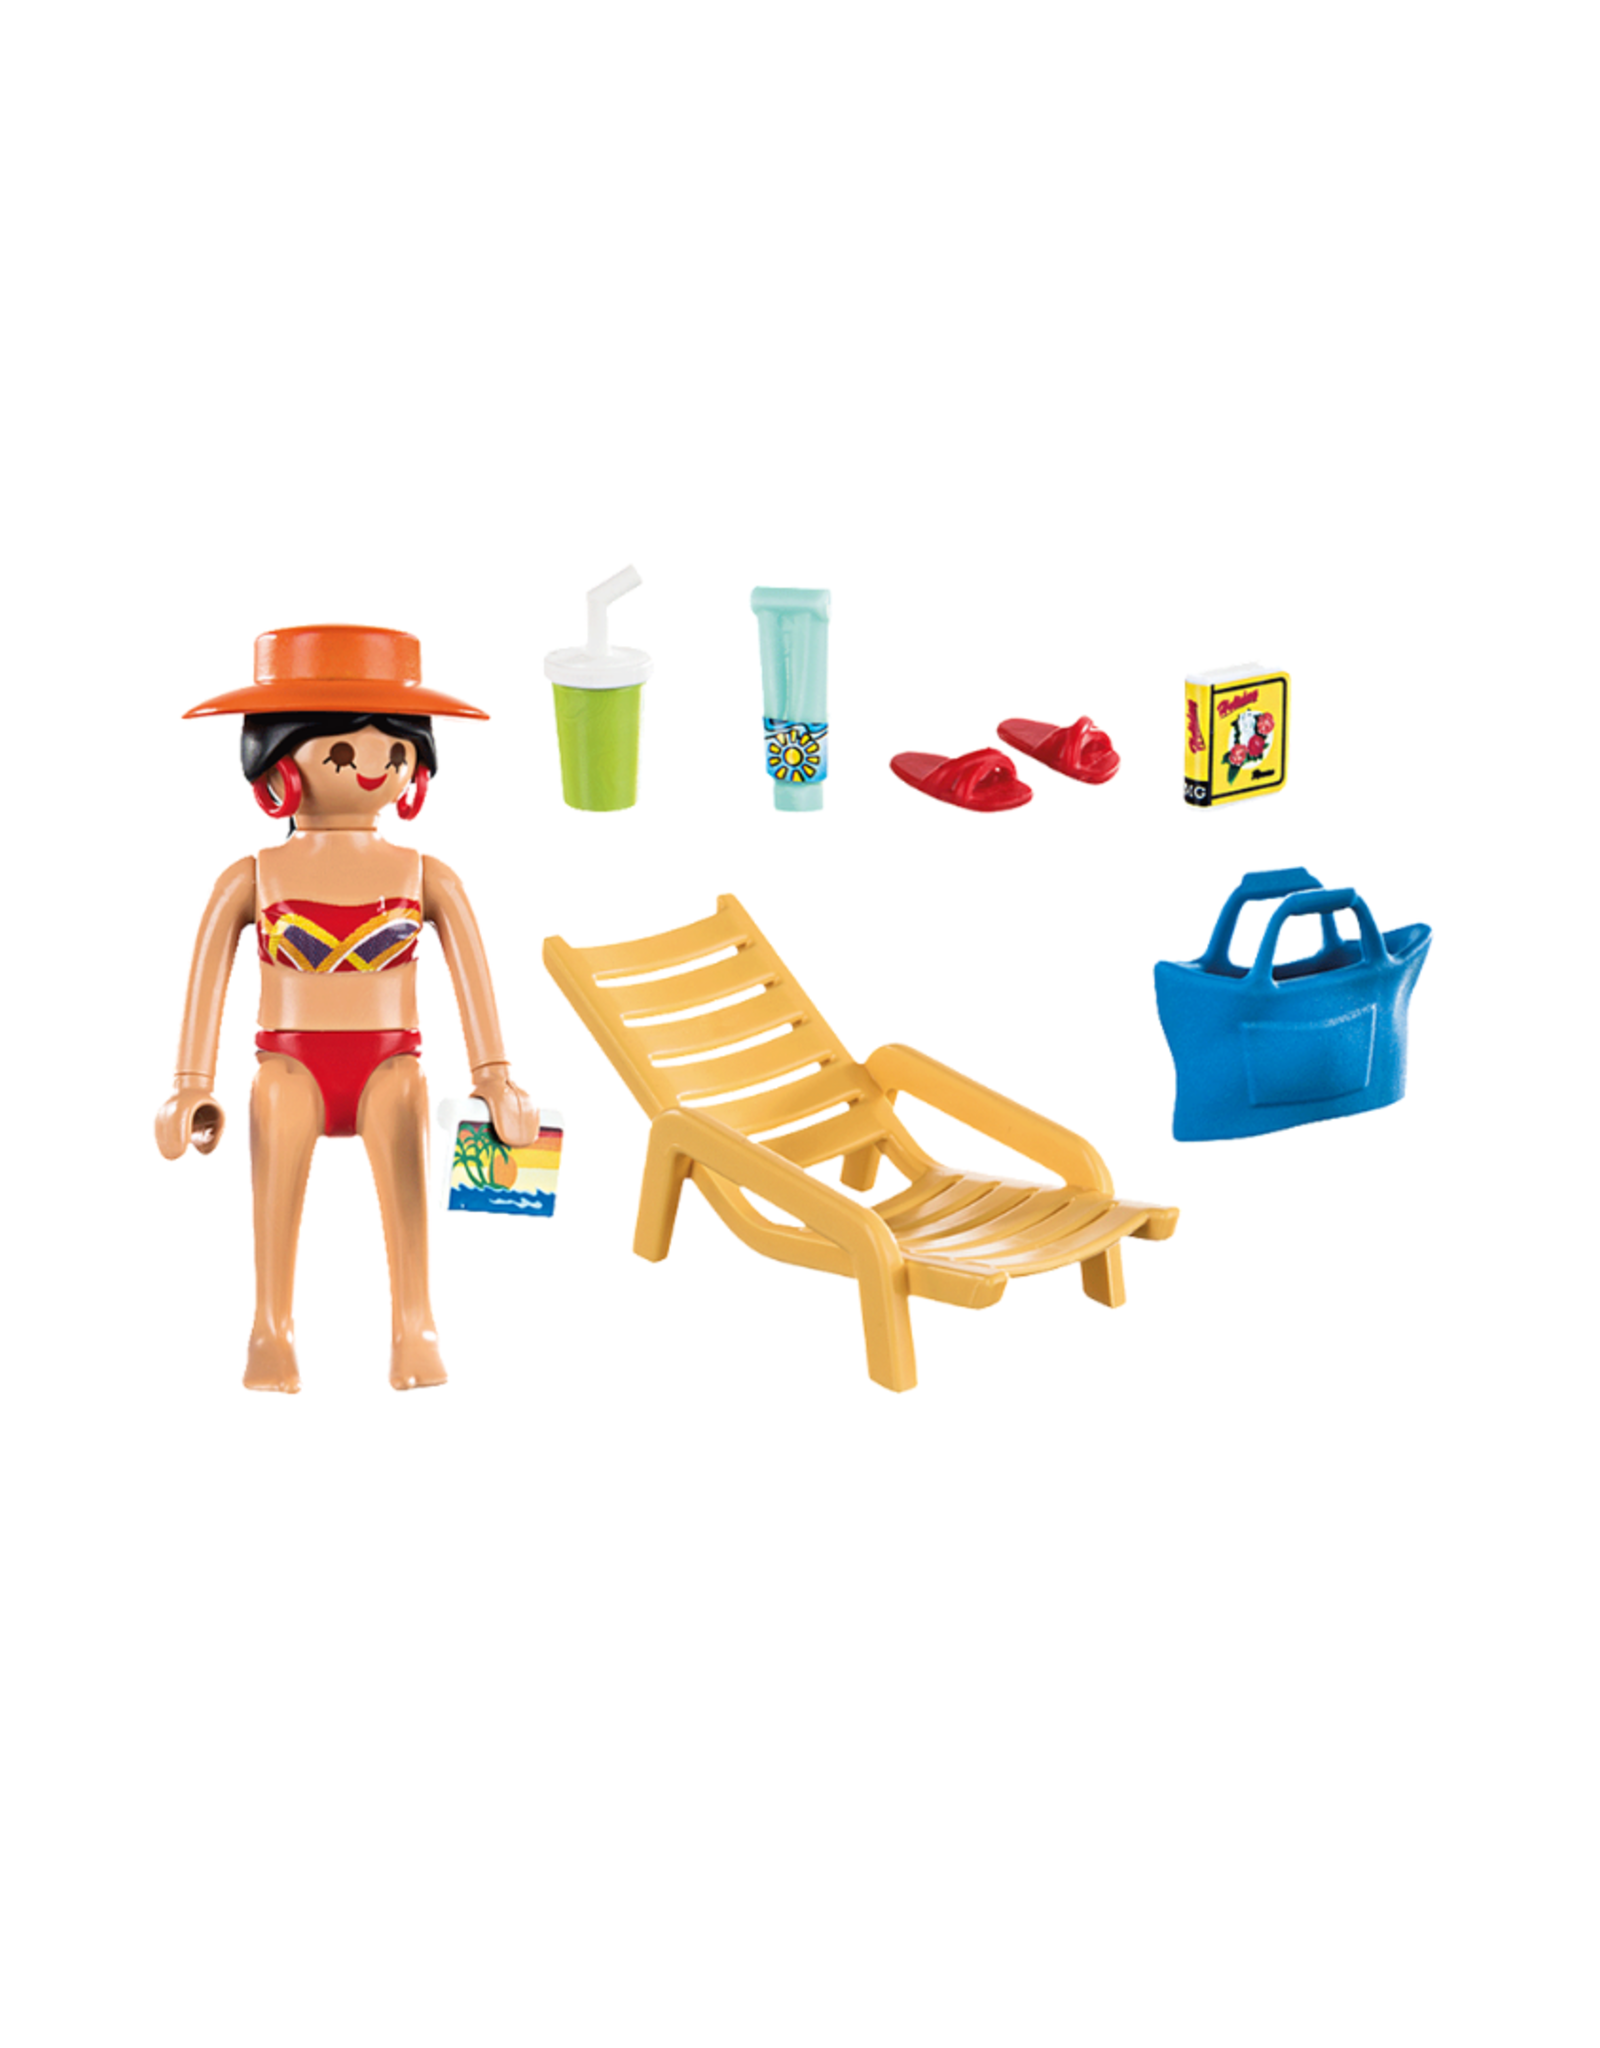 Playmobil PM - Sunbather with Lounge Chair